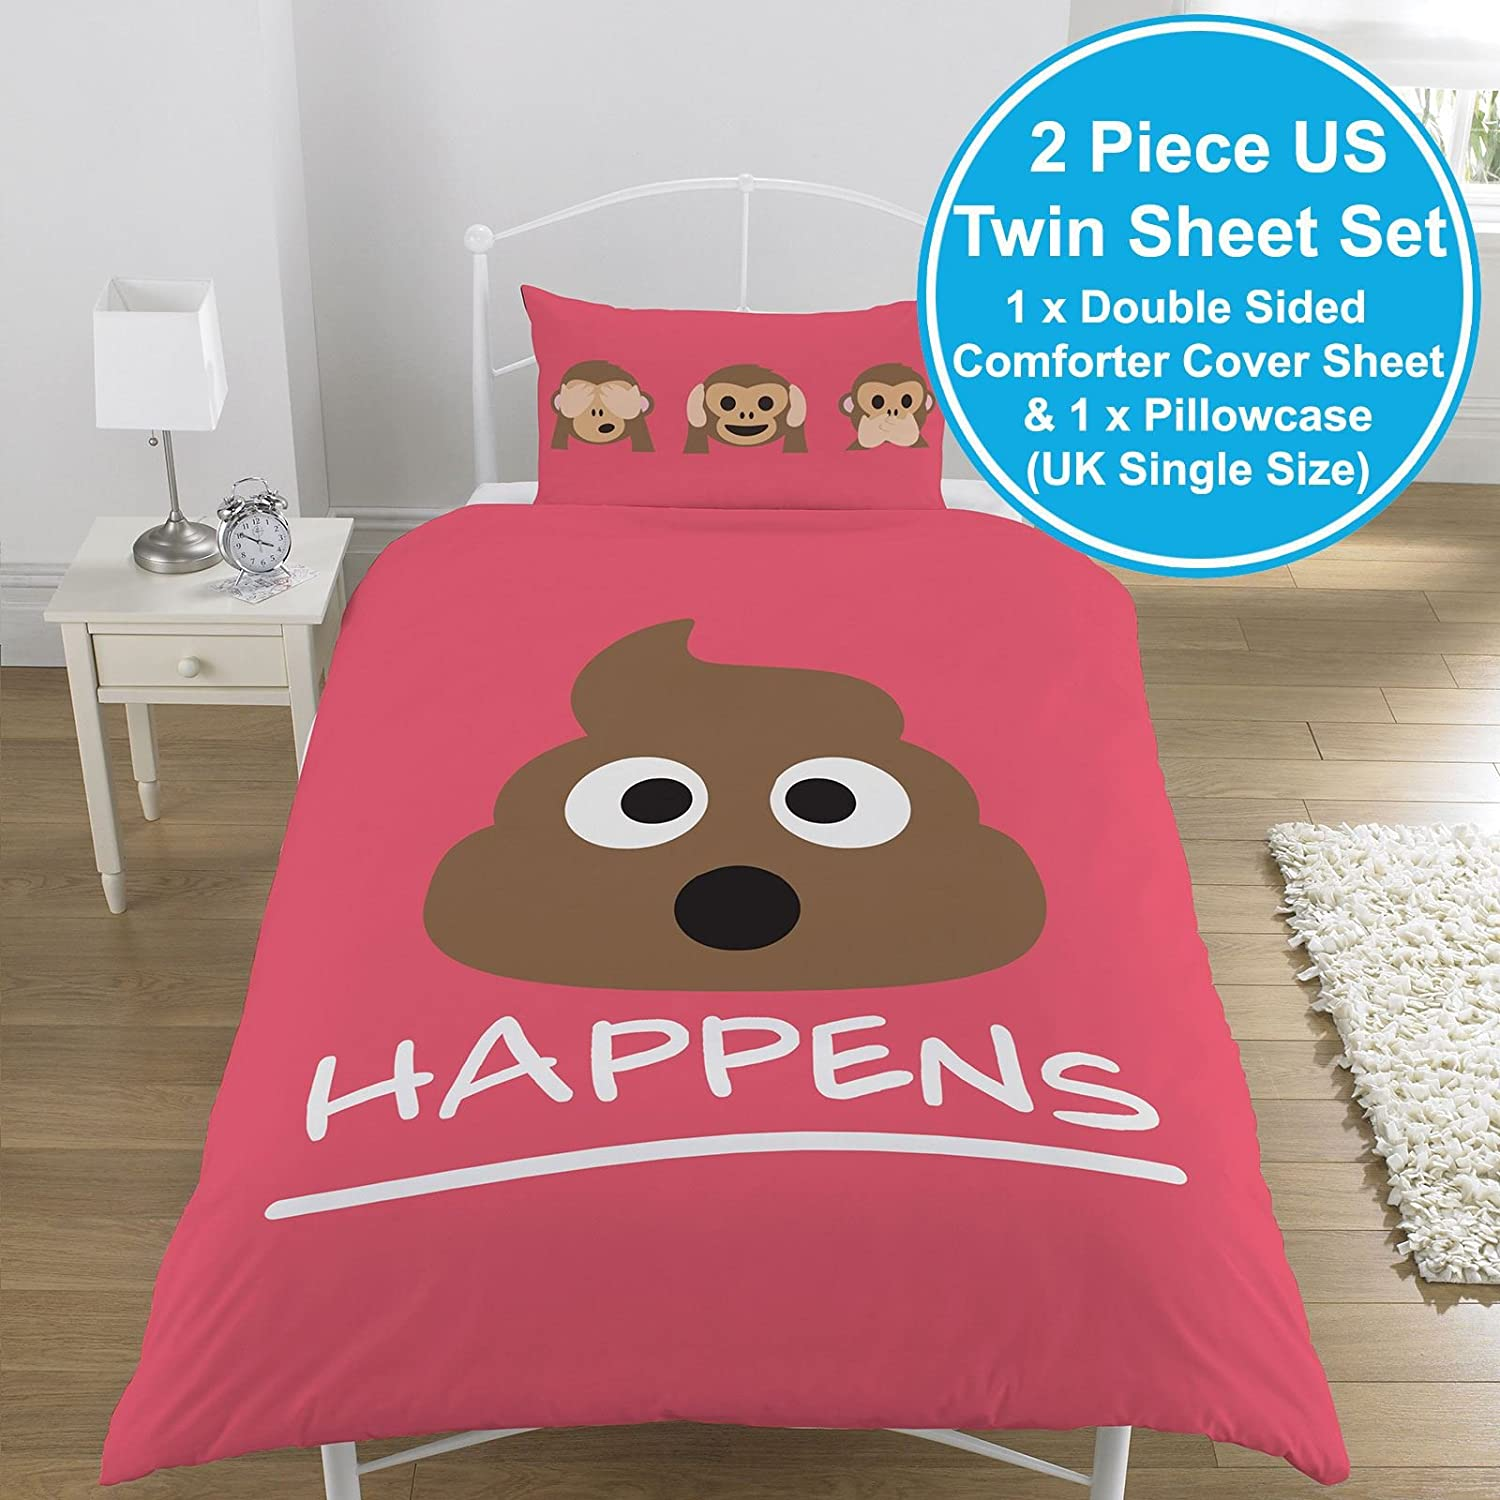 amazon com emoji mr poo 2 piece uk single us twin sheet set 1 x